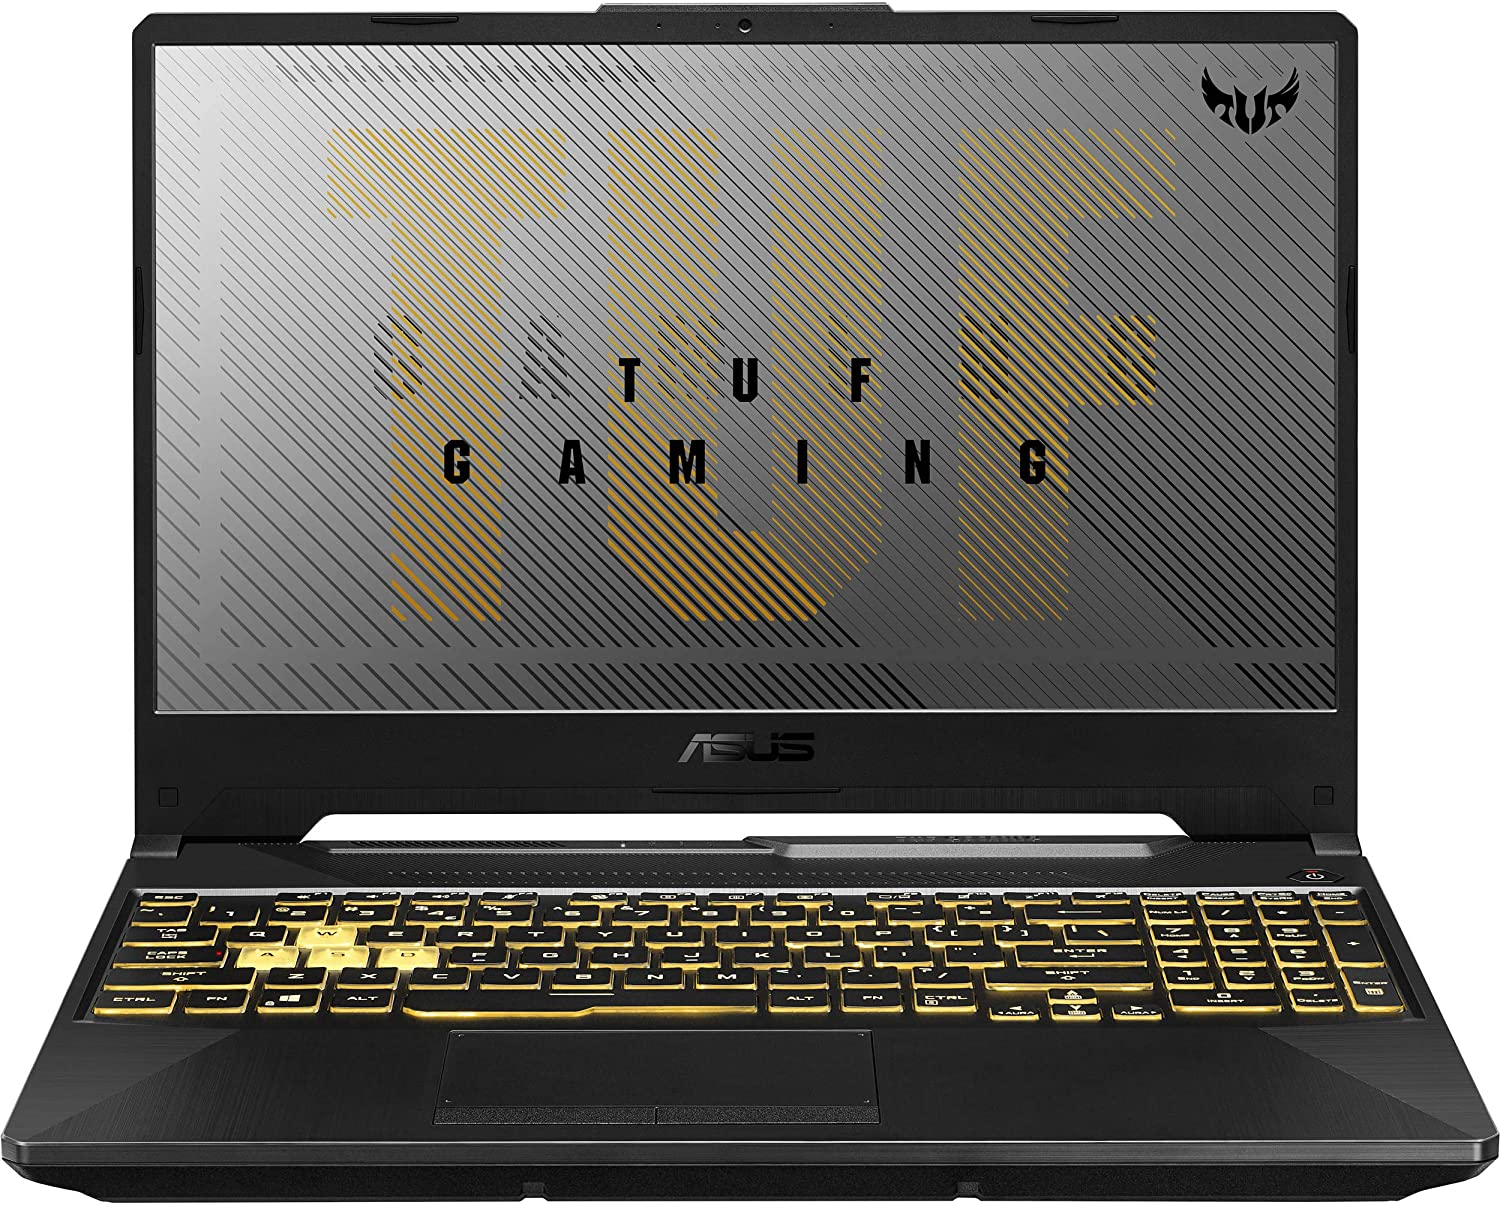 "ASUS TUF VR Ready Gaming Laptop, 15.6"" IPS FHD, AMD Ryzen 7-4800H Octa-Core up to 4.20 GHz, NVIDIA RTX 2060, 32GB RAM, 1TB SSD, RGB Backlit KB, RJ-45 Ethernet, Win 10"